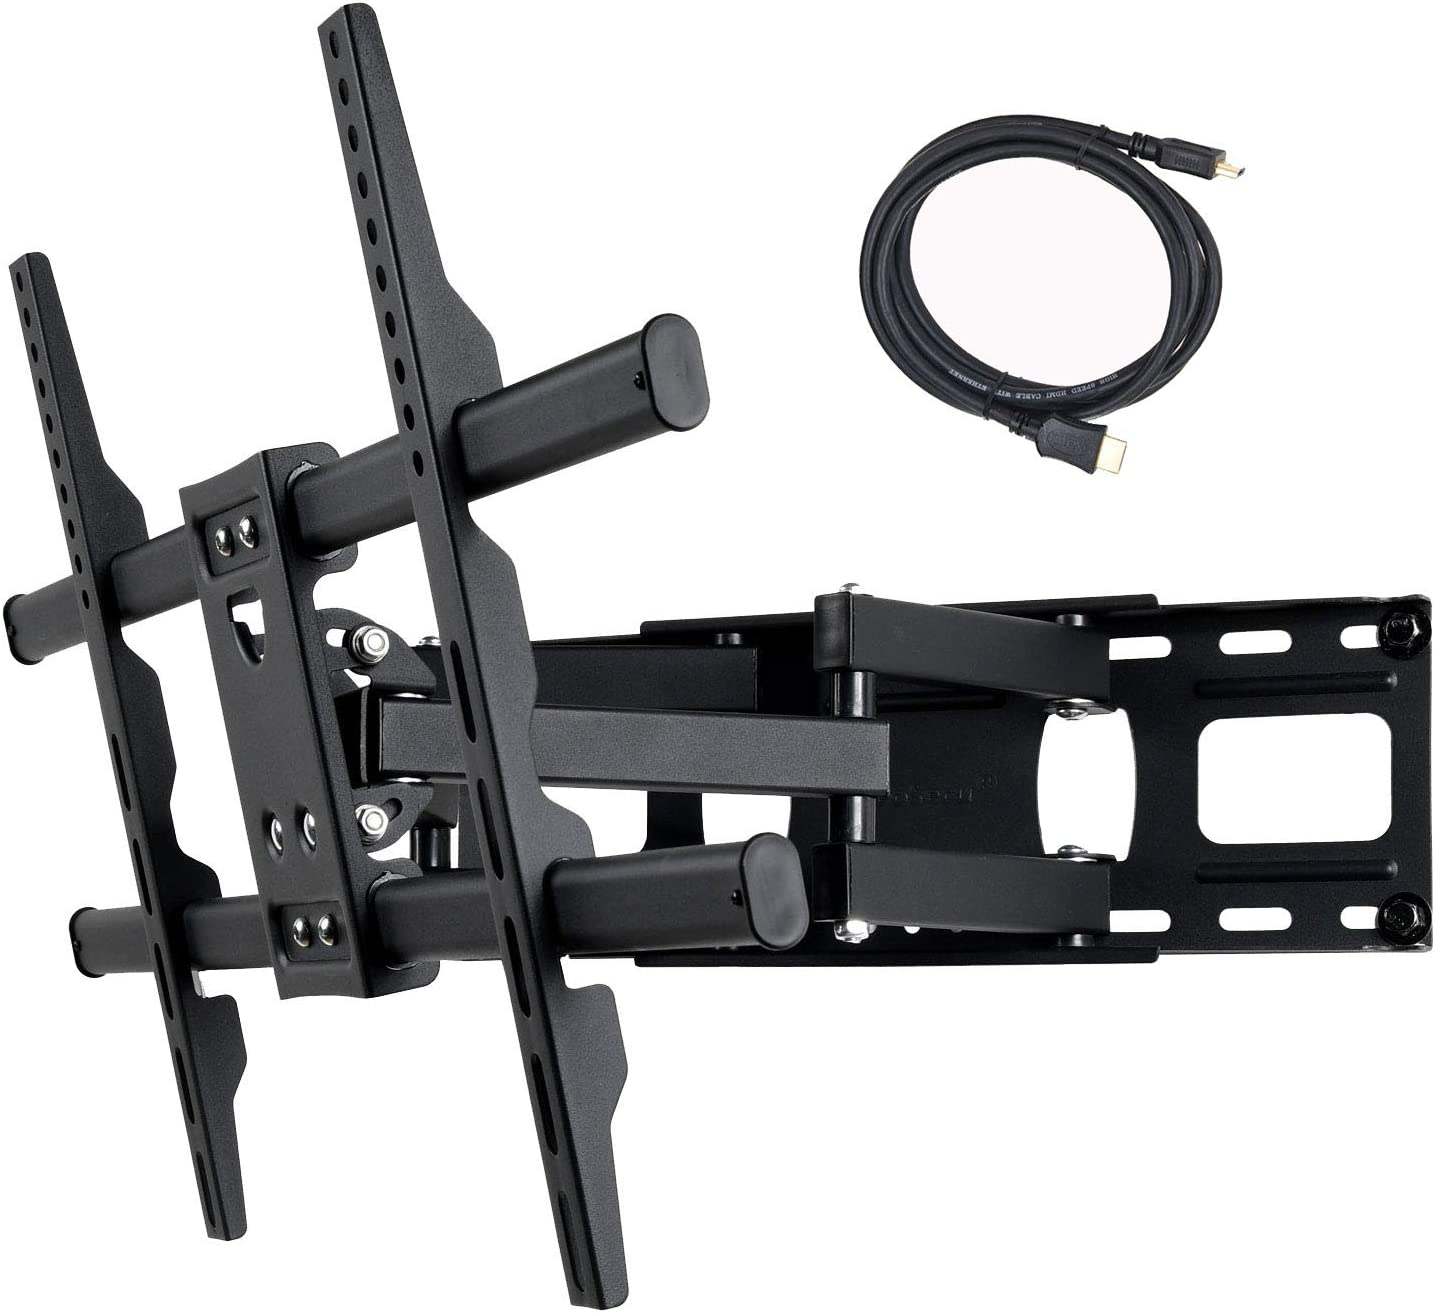 "VideoSecu MW380B5 Full Motion Articulating TV Wall Mount Bracket for Most 37""-75"" LED LCD Plasma HDTV Up to 125 lbs with VESA"